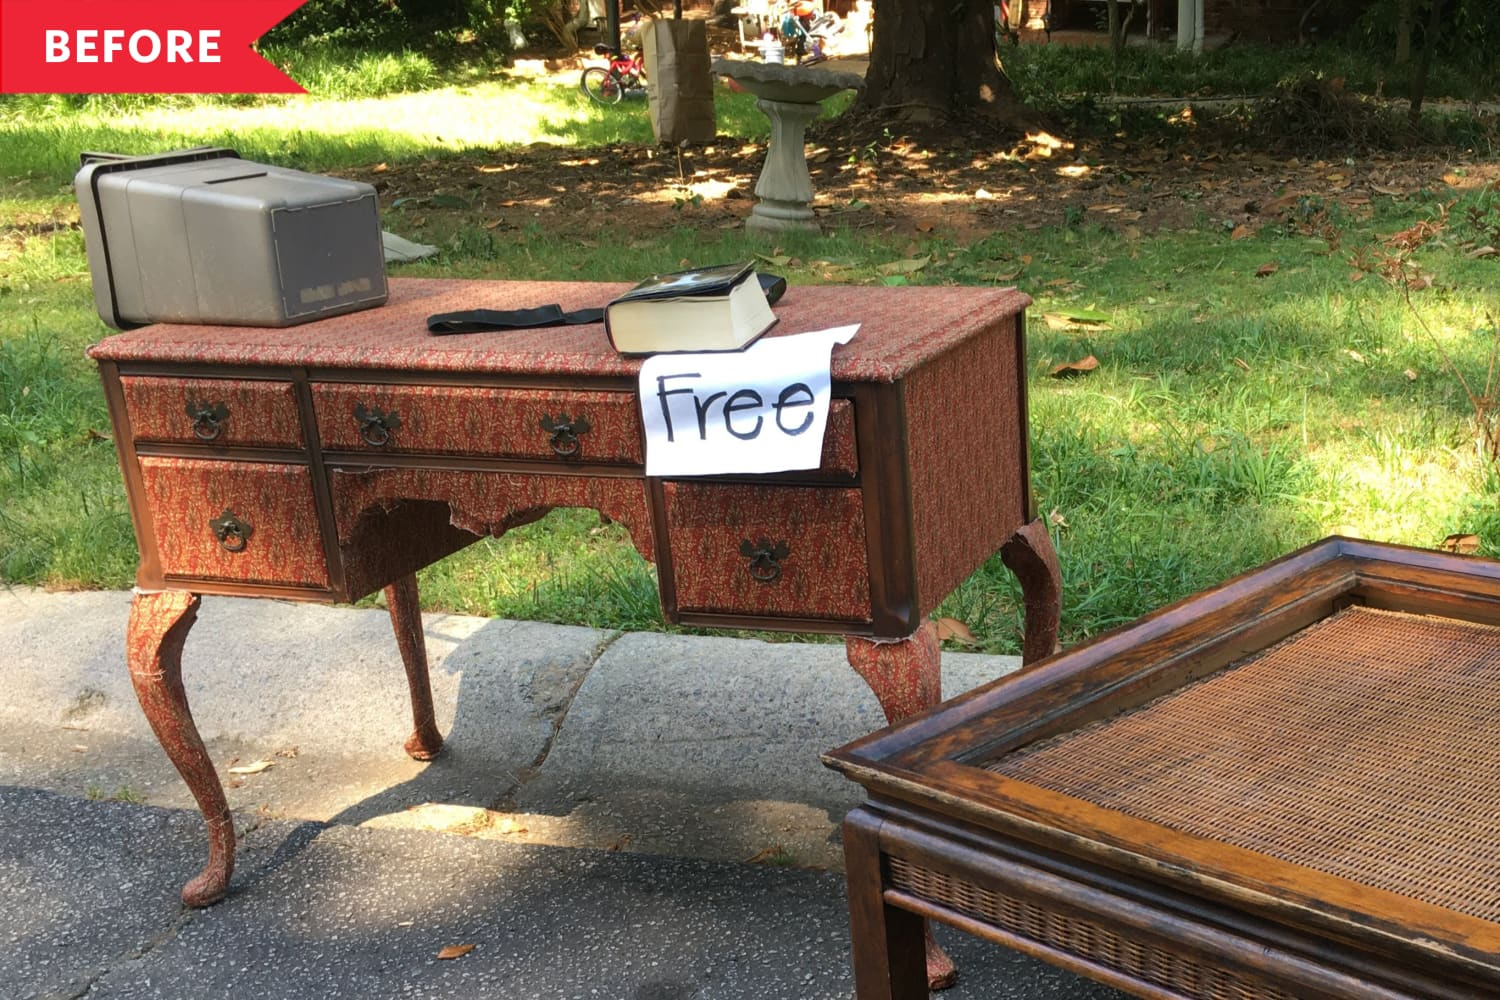 Before and After: A Trashed Vintage Desk Becomes a Restored Treasure